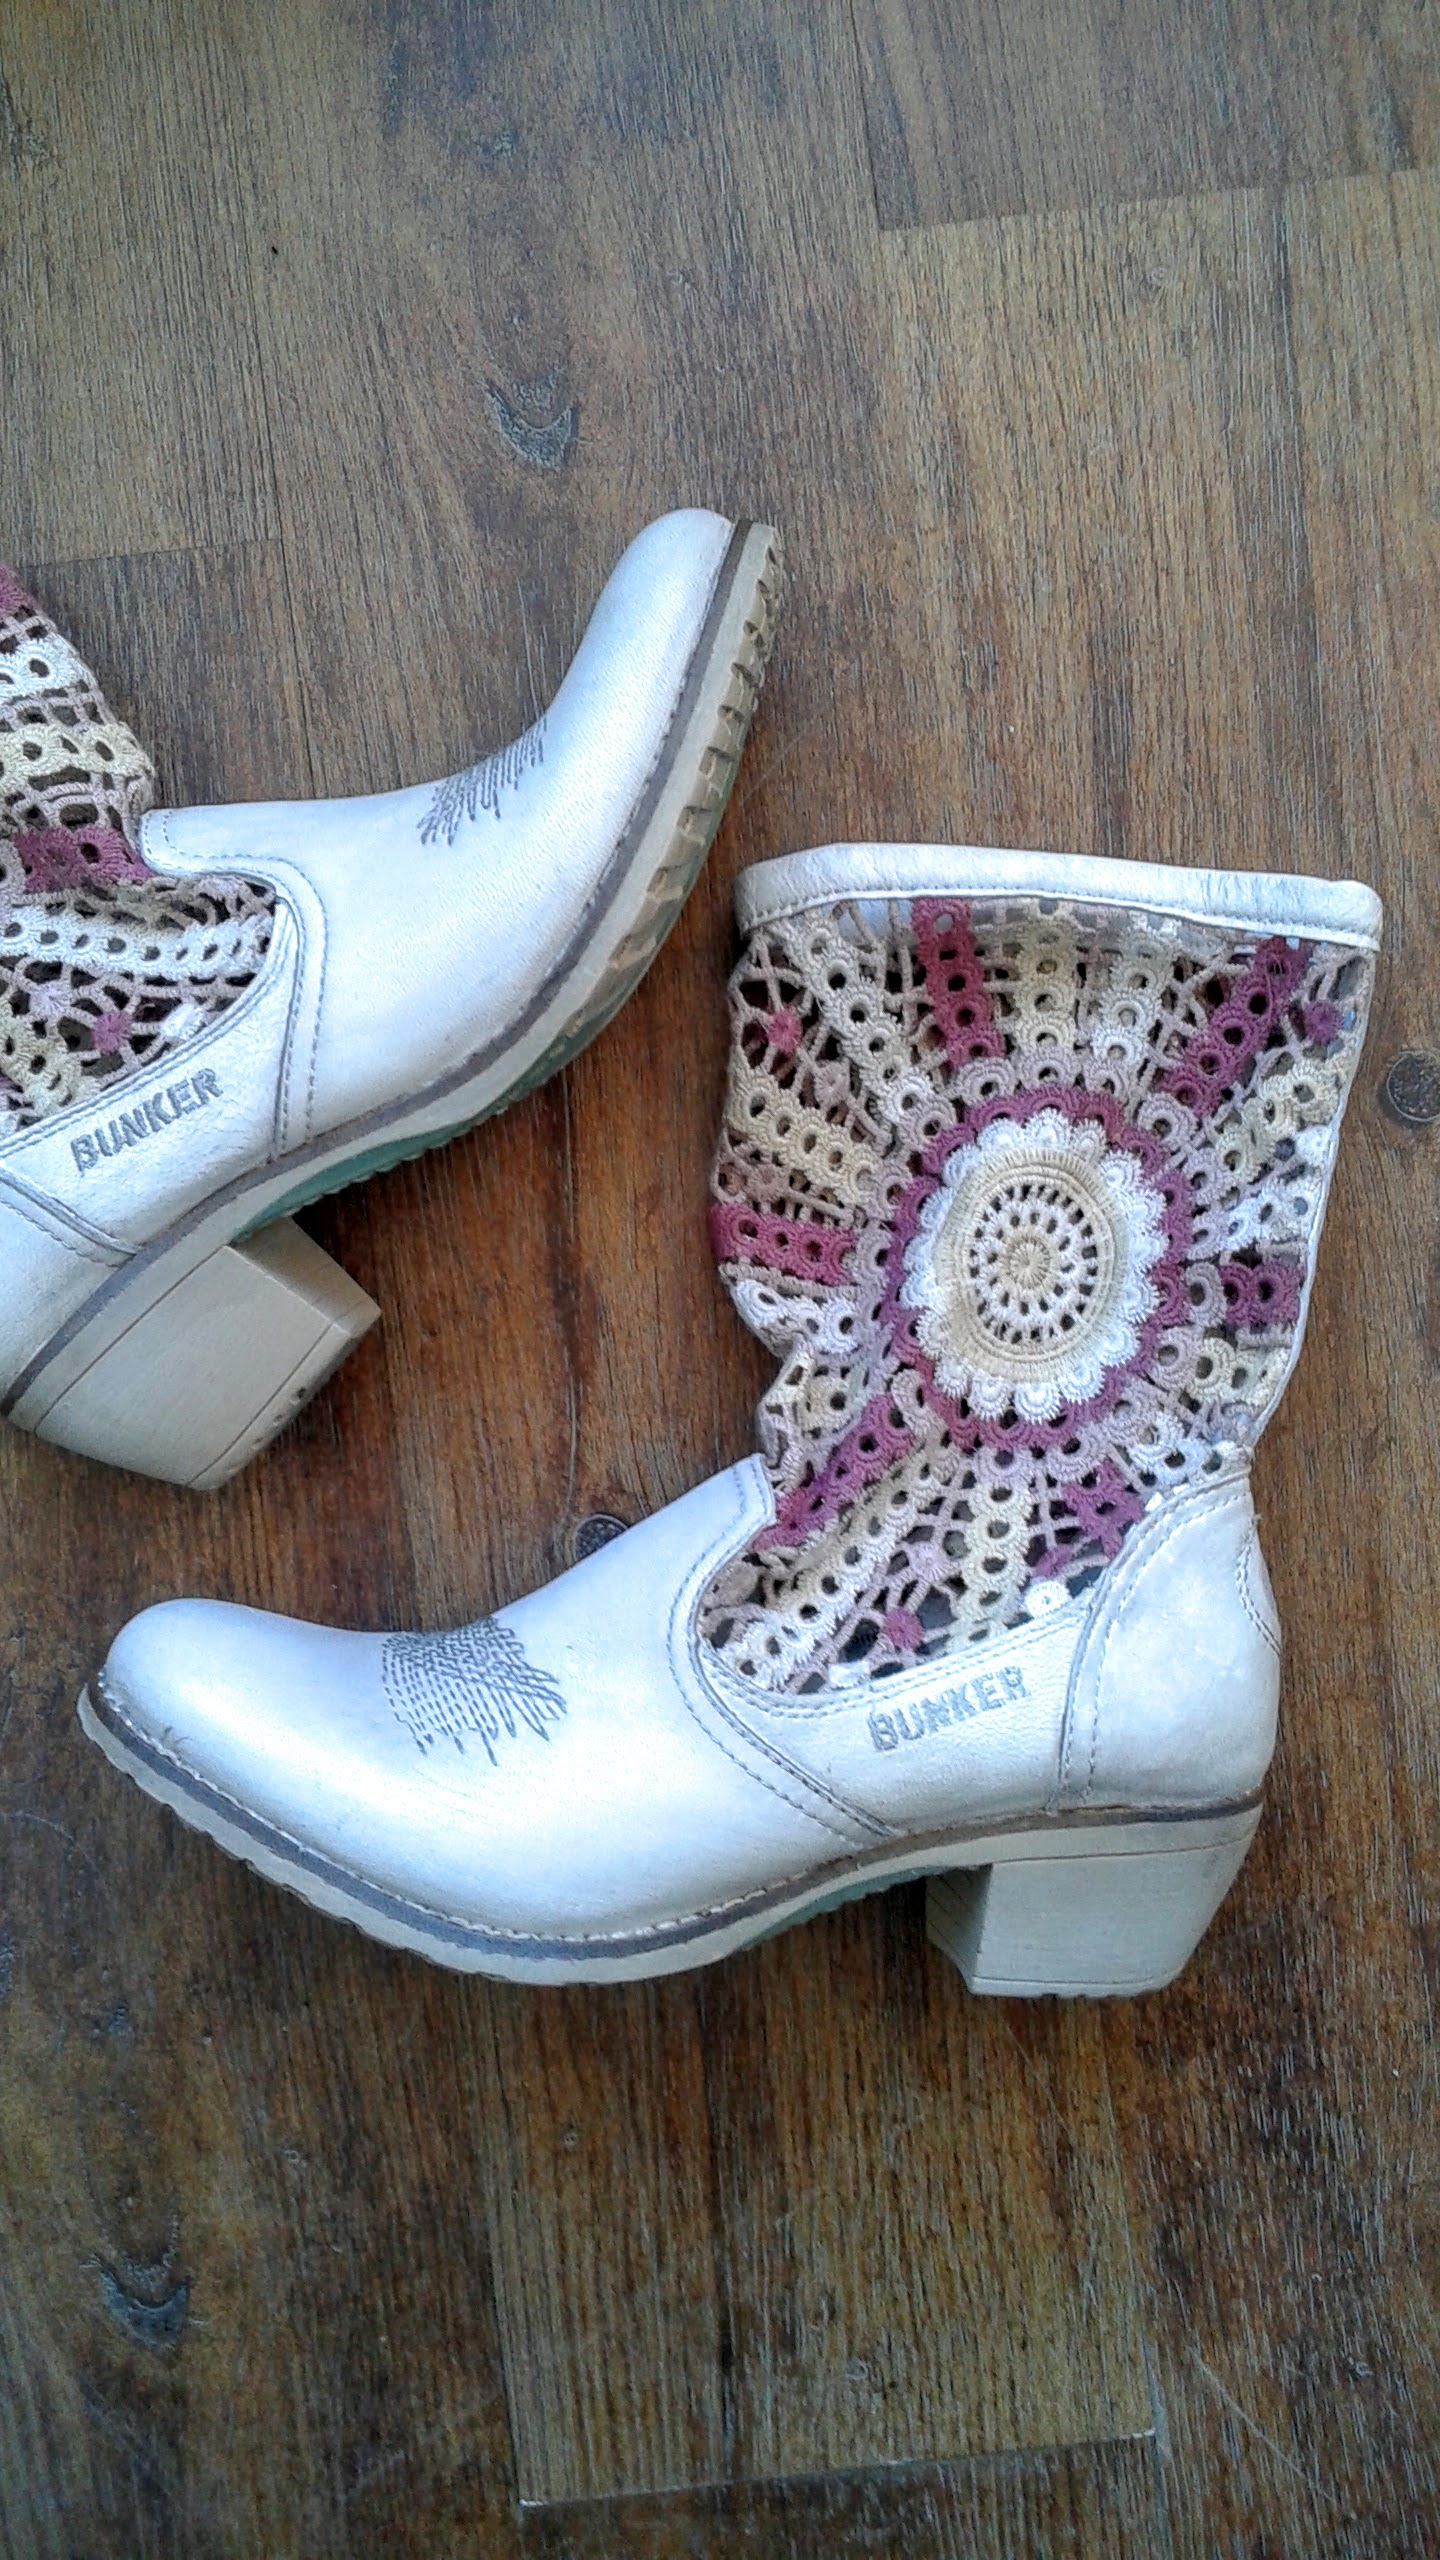 Bunker boots (NWT); S8, $85